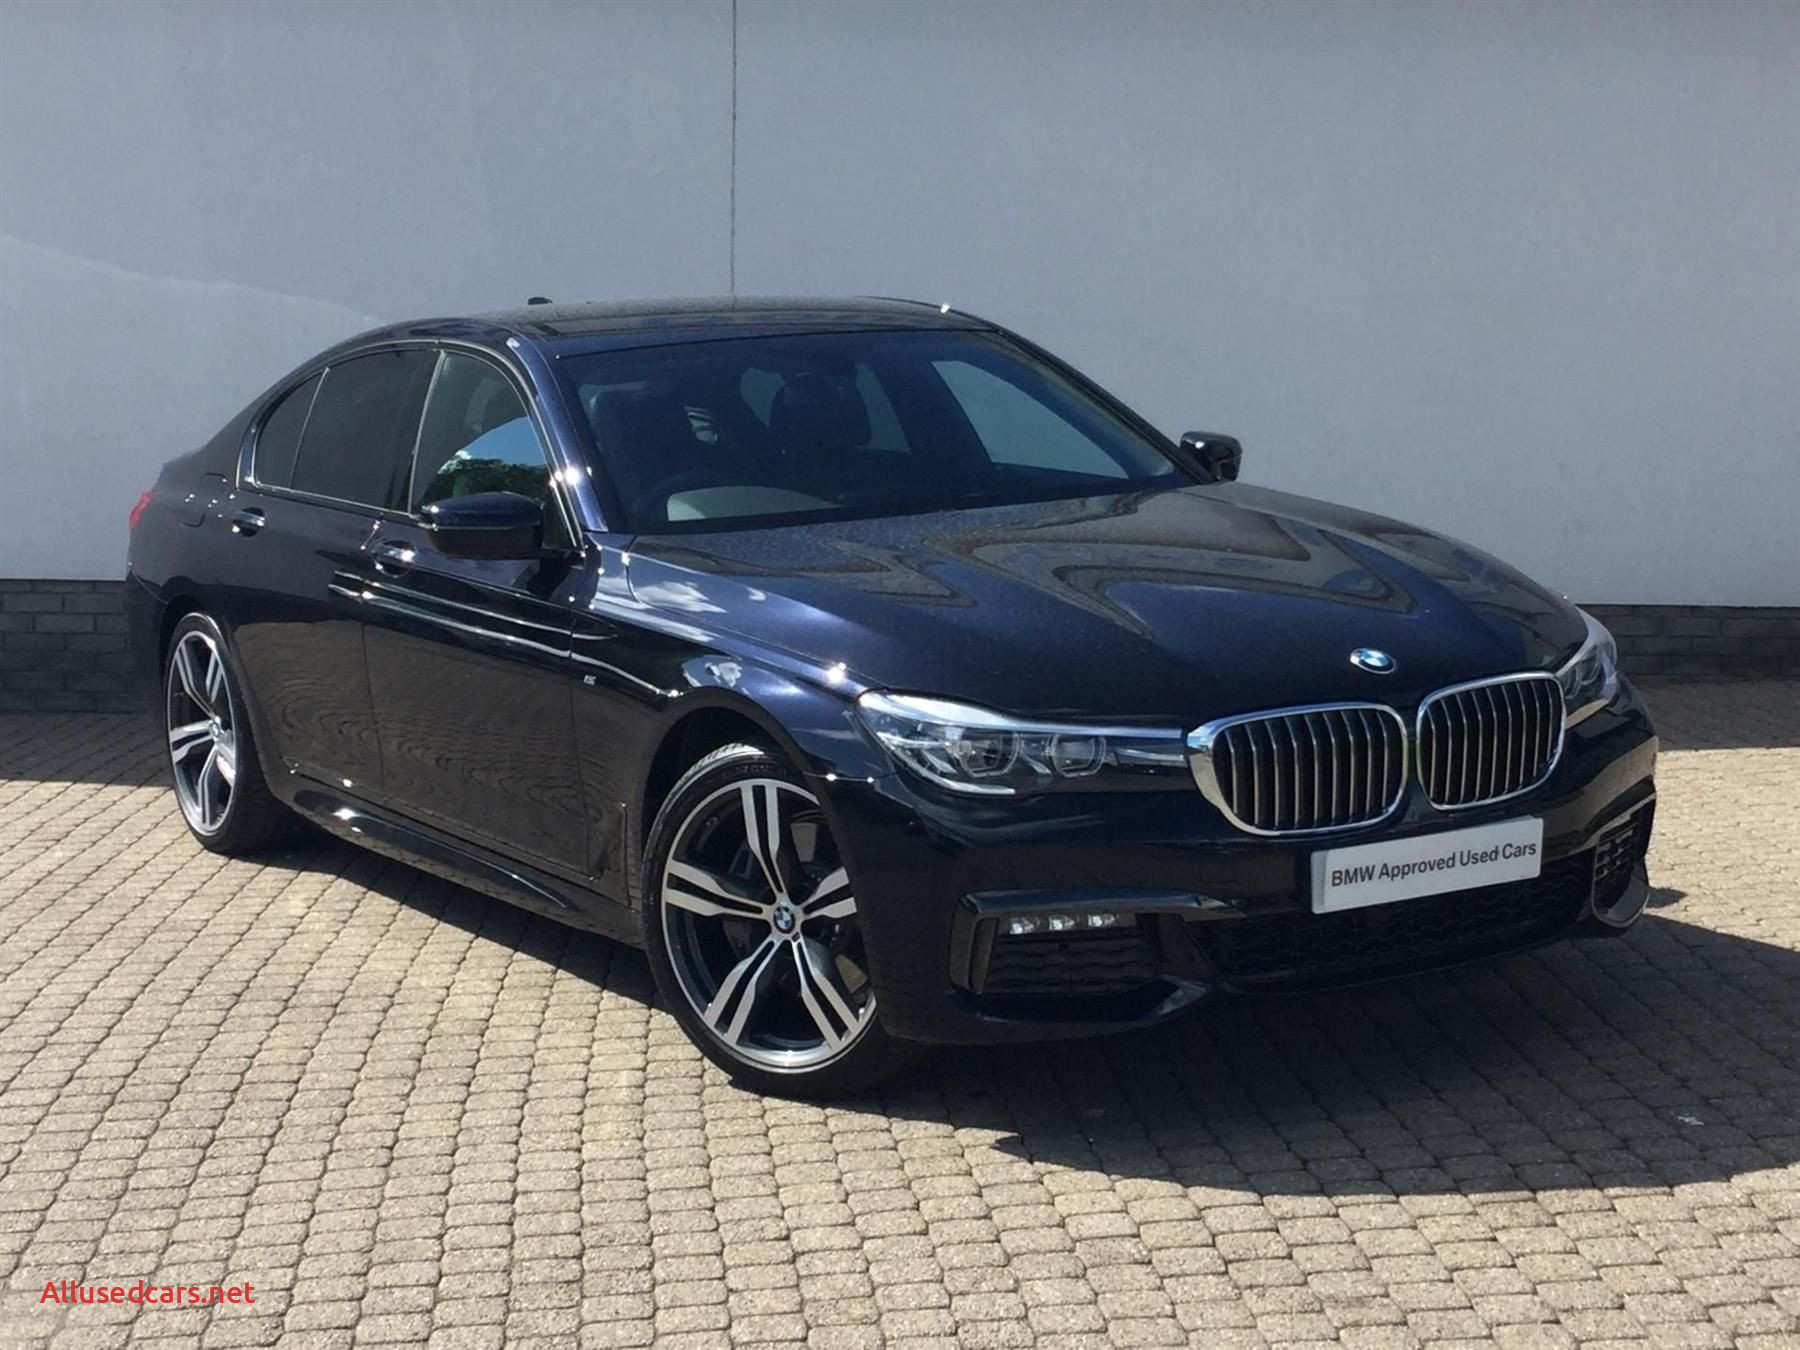 Activehybrid 7 Beautiful Used 2019 Bmw 7 Series G11 730d Xdrive M Sport Saloon B57